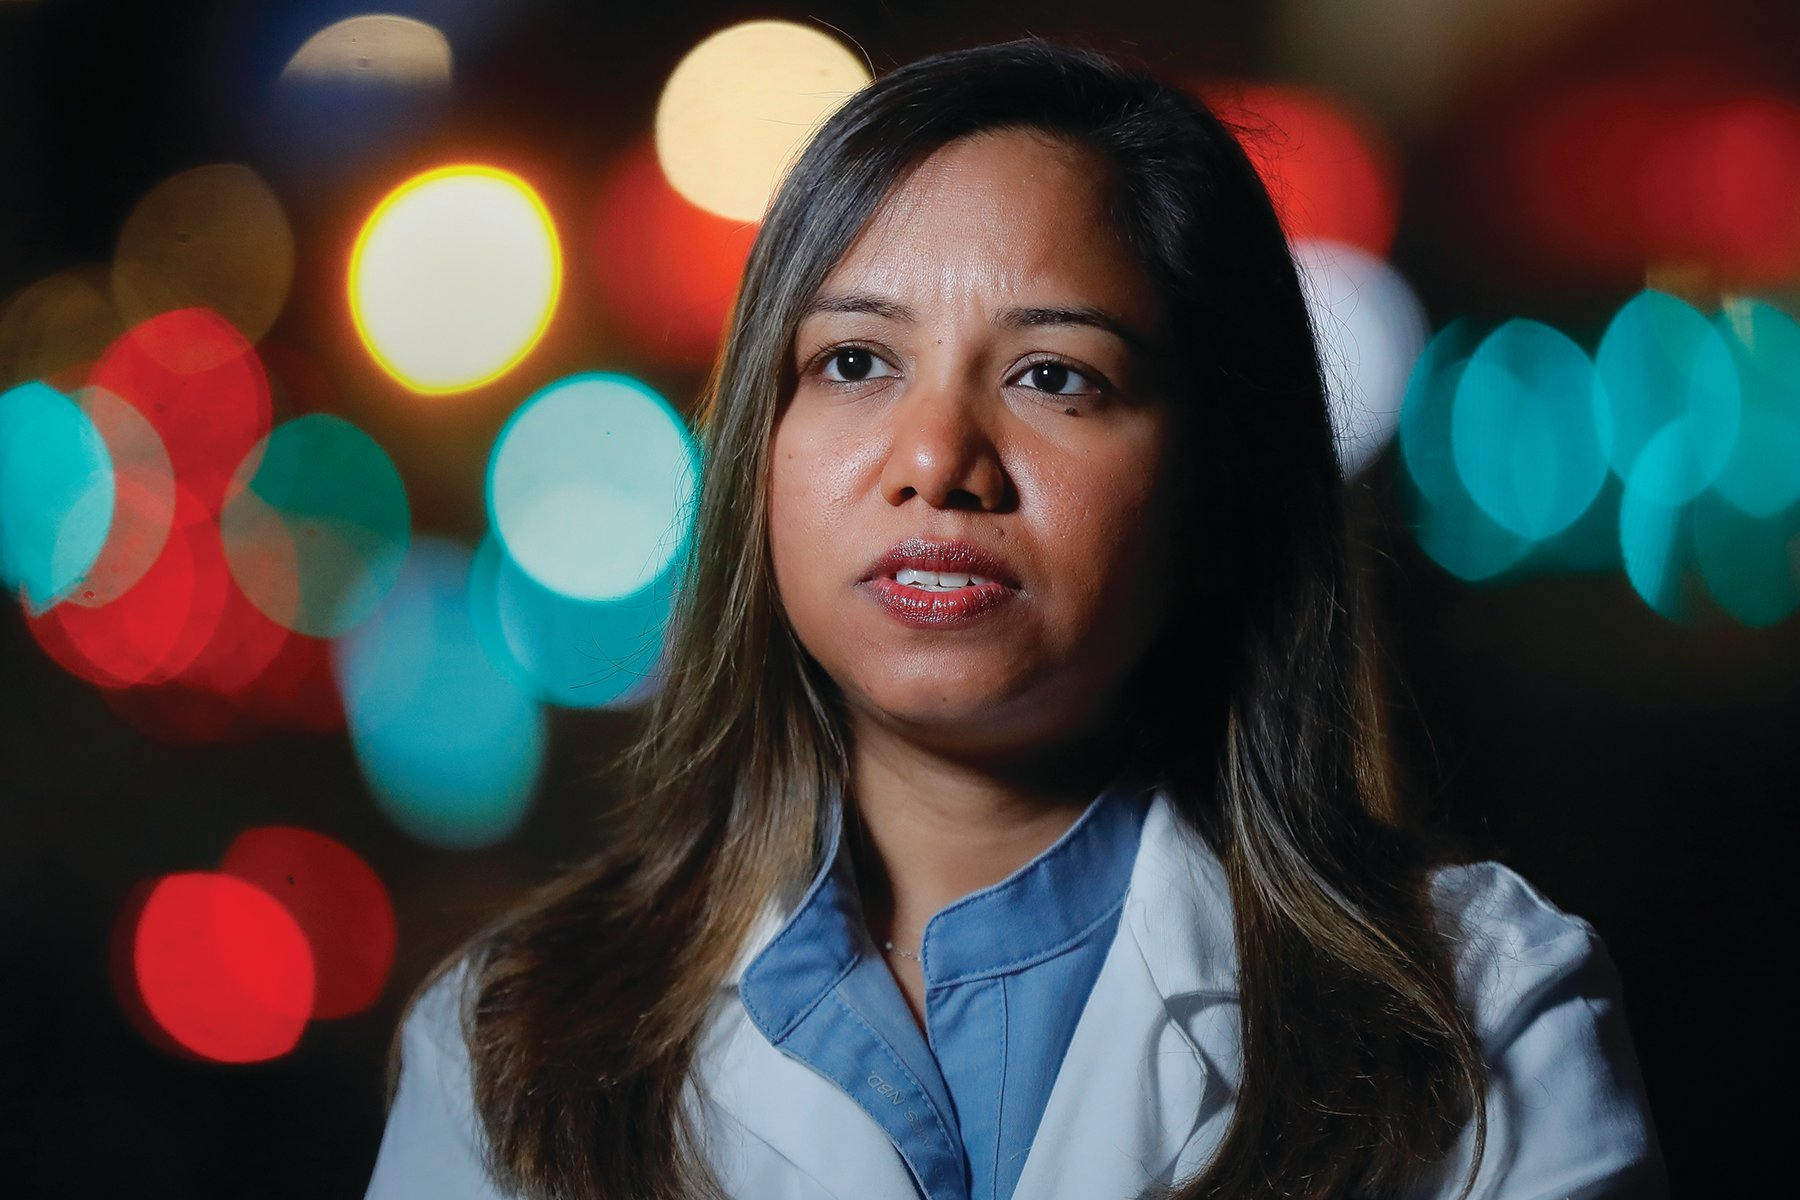 THE ASSOCIATED PRESSKamini Doobay, an Emergency Medicine Resident physician at NYU Langone Medical Center and Bellevue Hospital, talks during an interview about her experiences treating COVID-19 patients, Thursday, March 26, 2020, in New York.